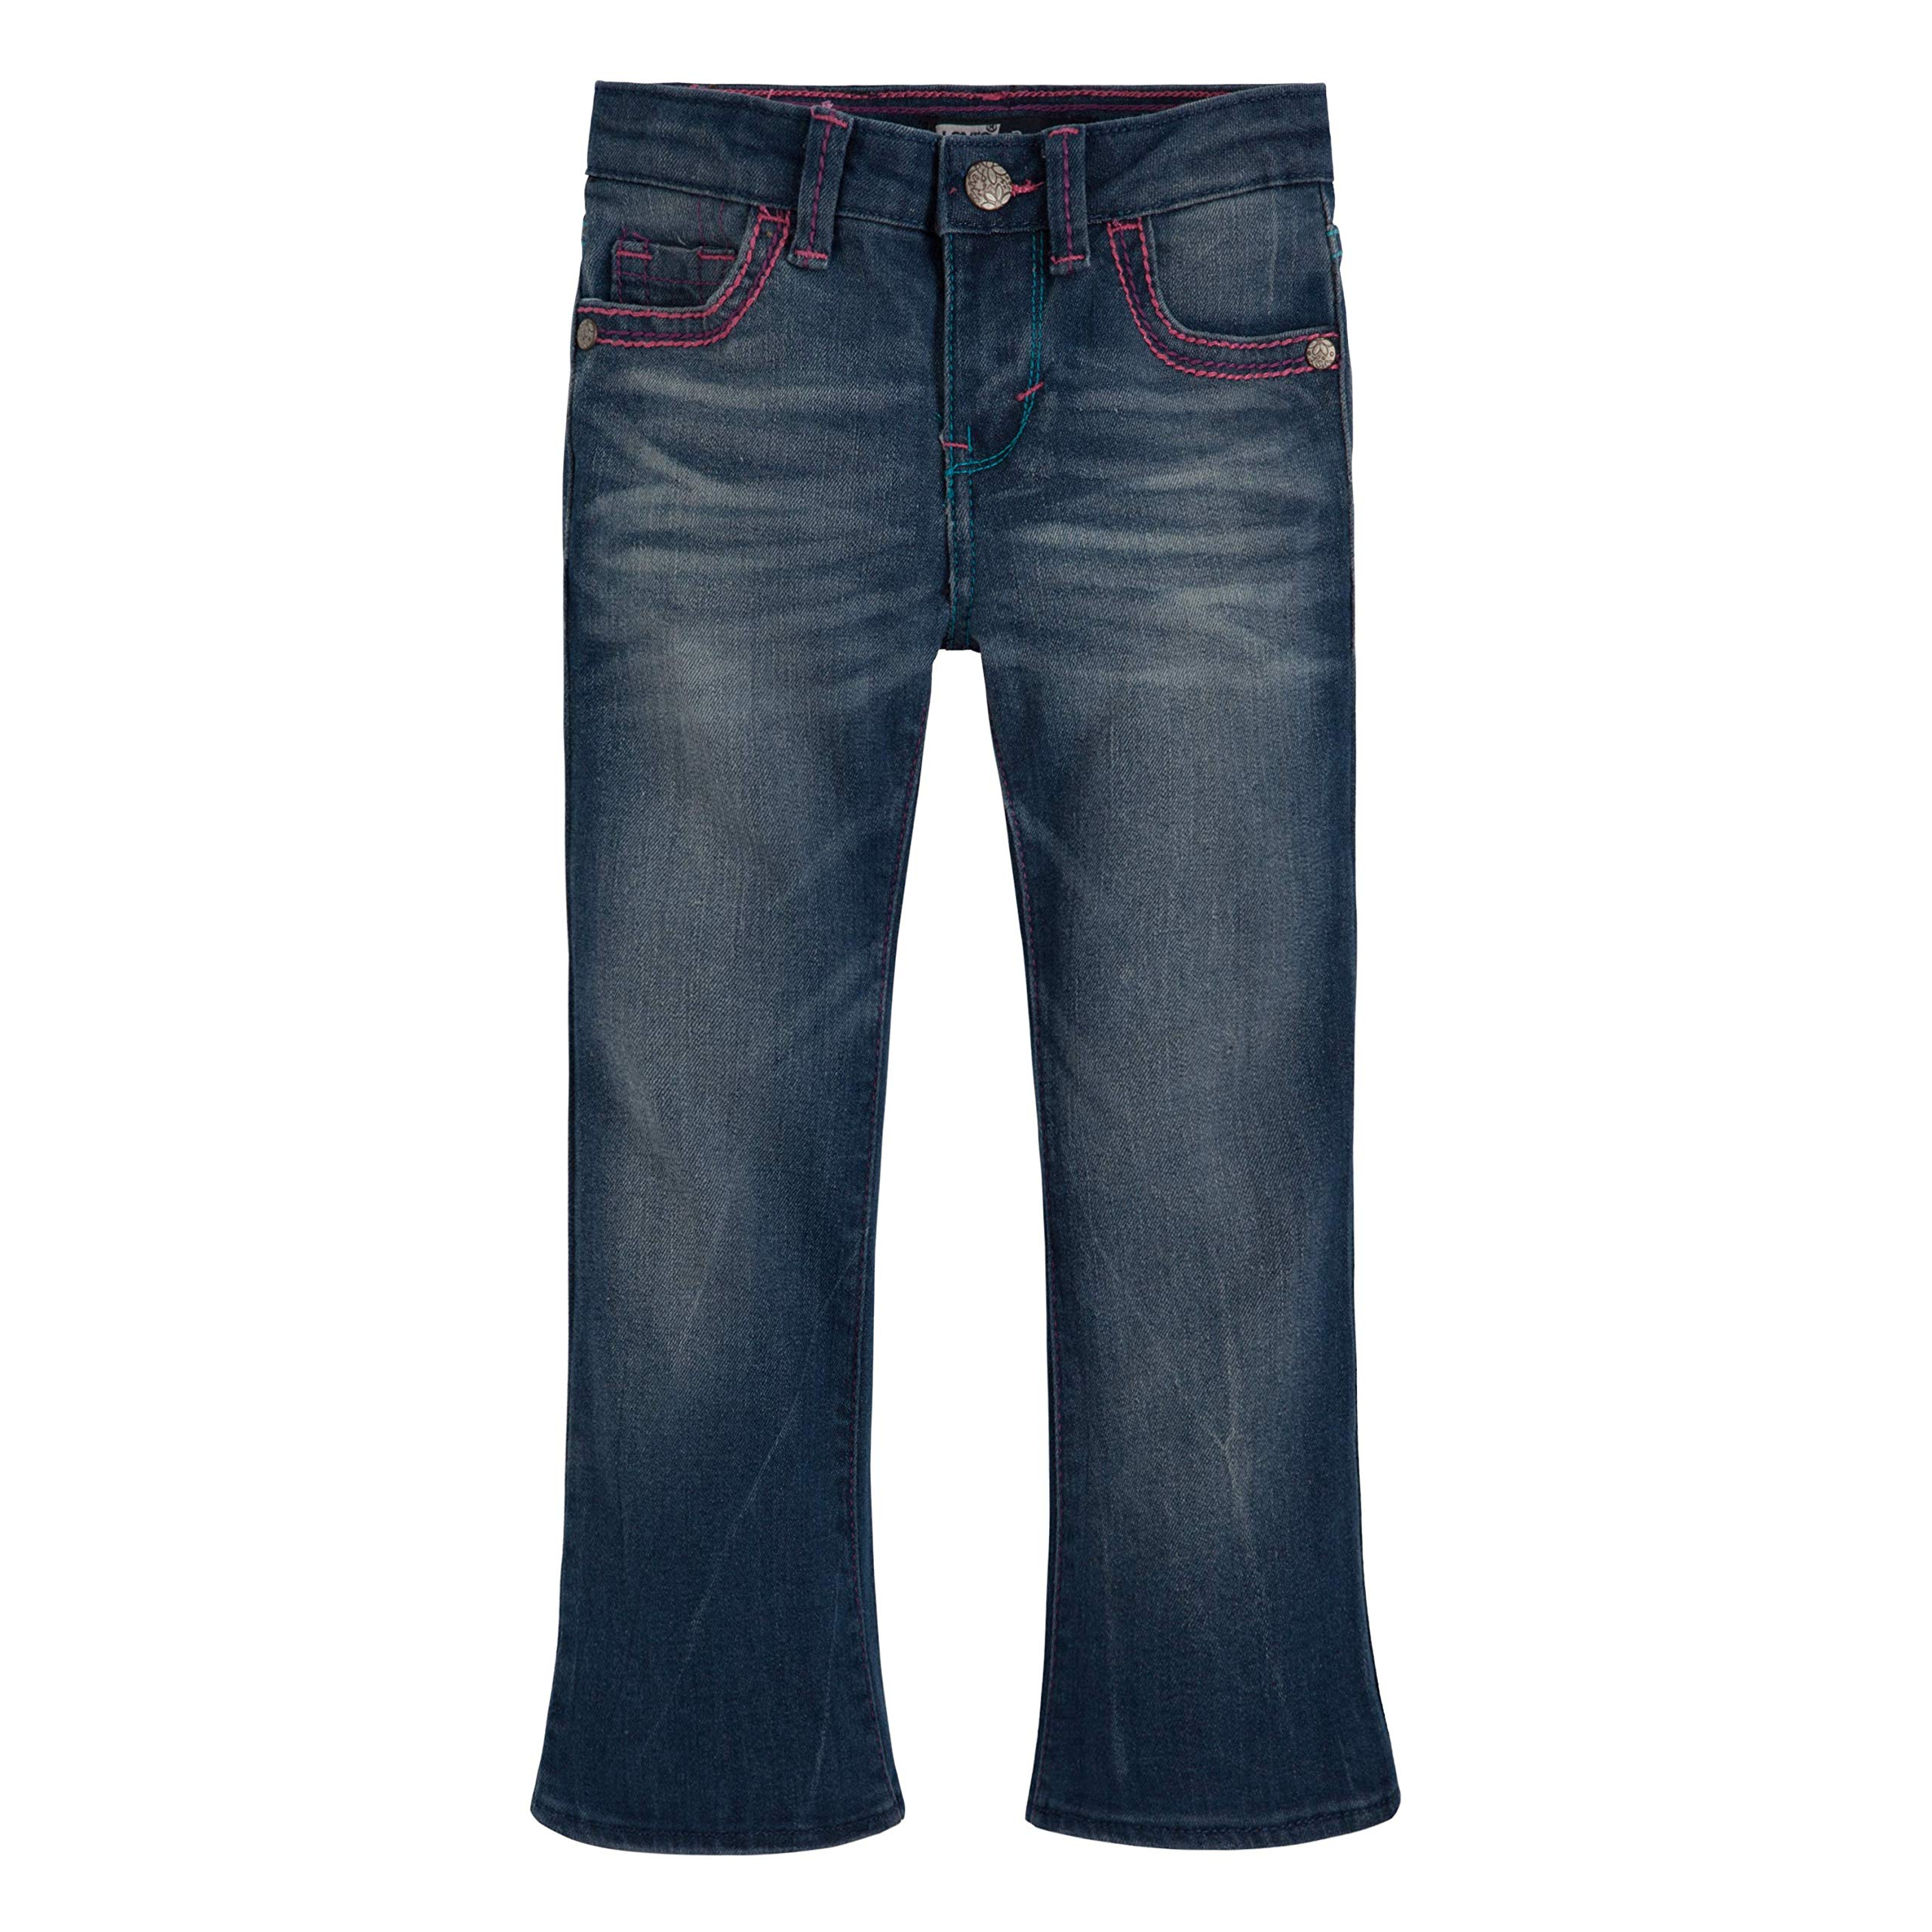 Levi's Girls' Toddler 715 Bootcut Thick Stitch